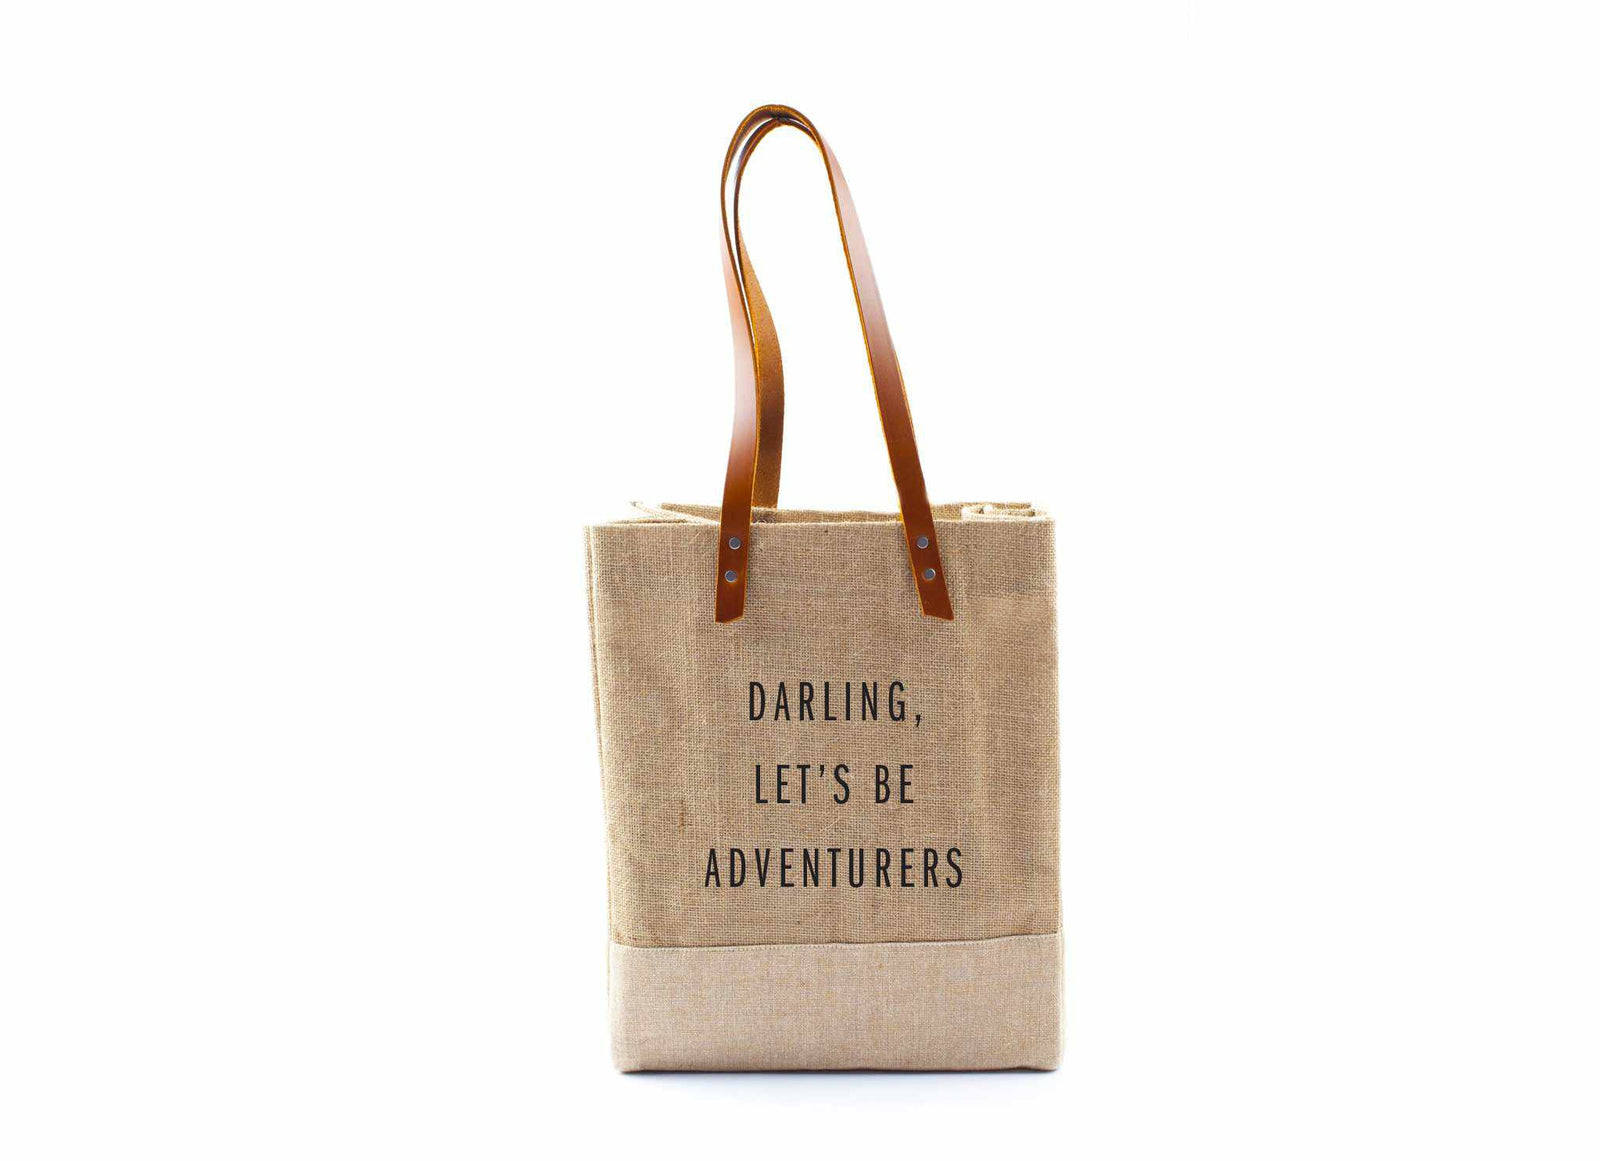 'Darling, Let's Be Adventurers' Wine Tote, through May 31 Only